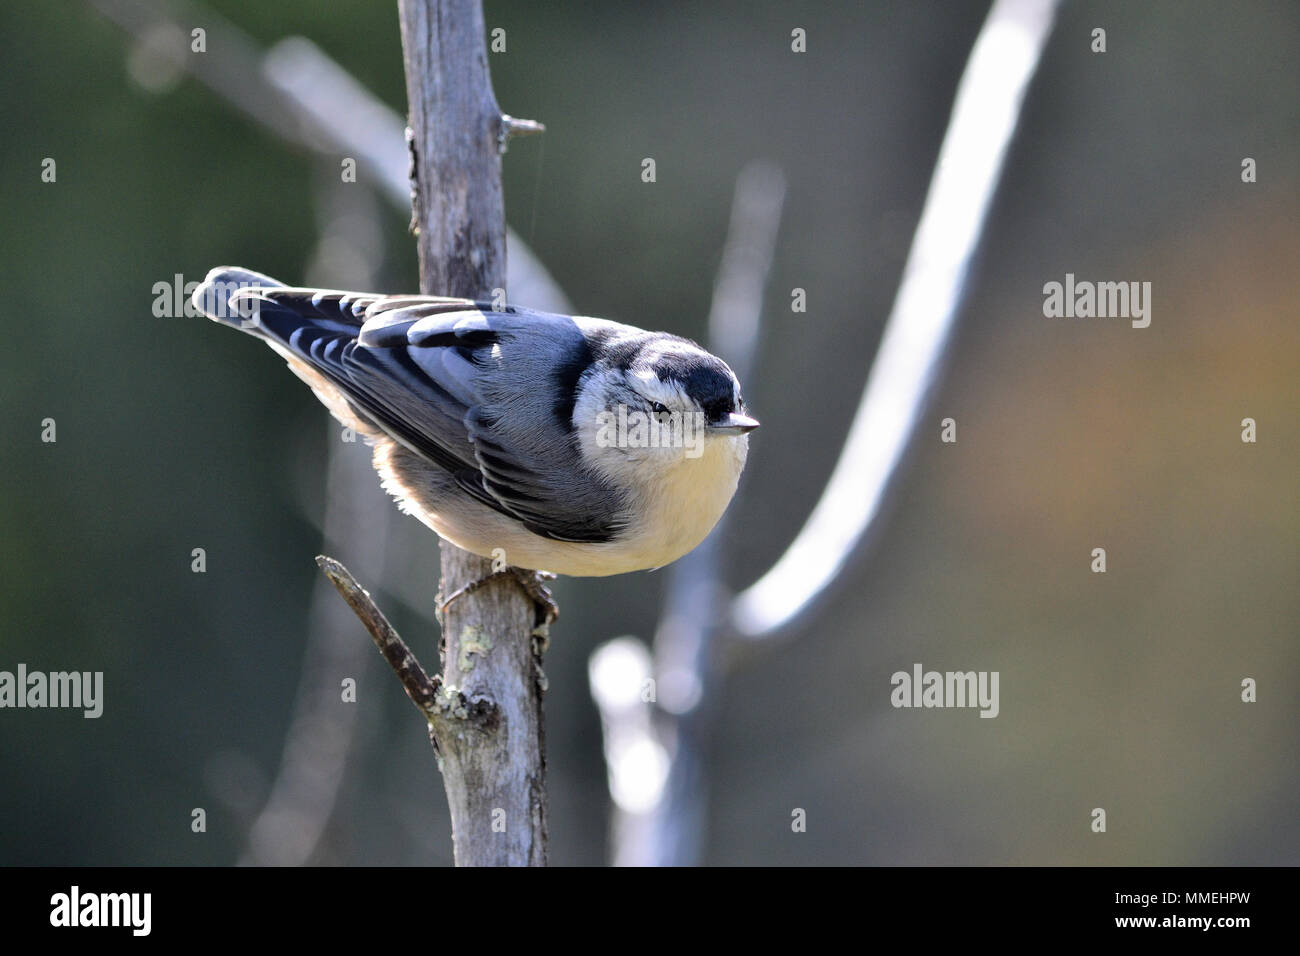 Portrait of white-breasted nuthatch, Sitta carolinensis - Stock Image